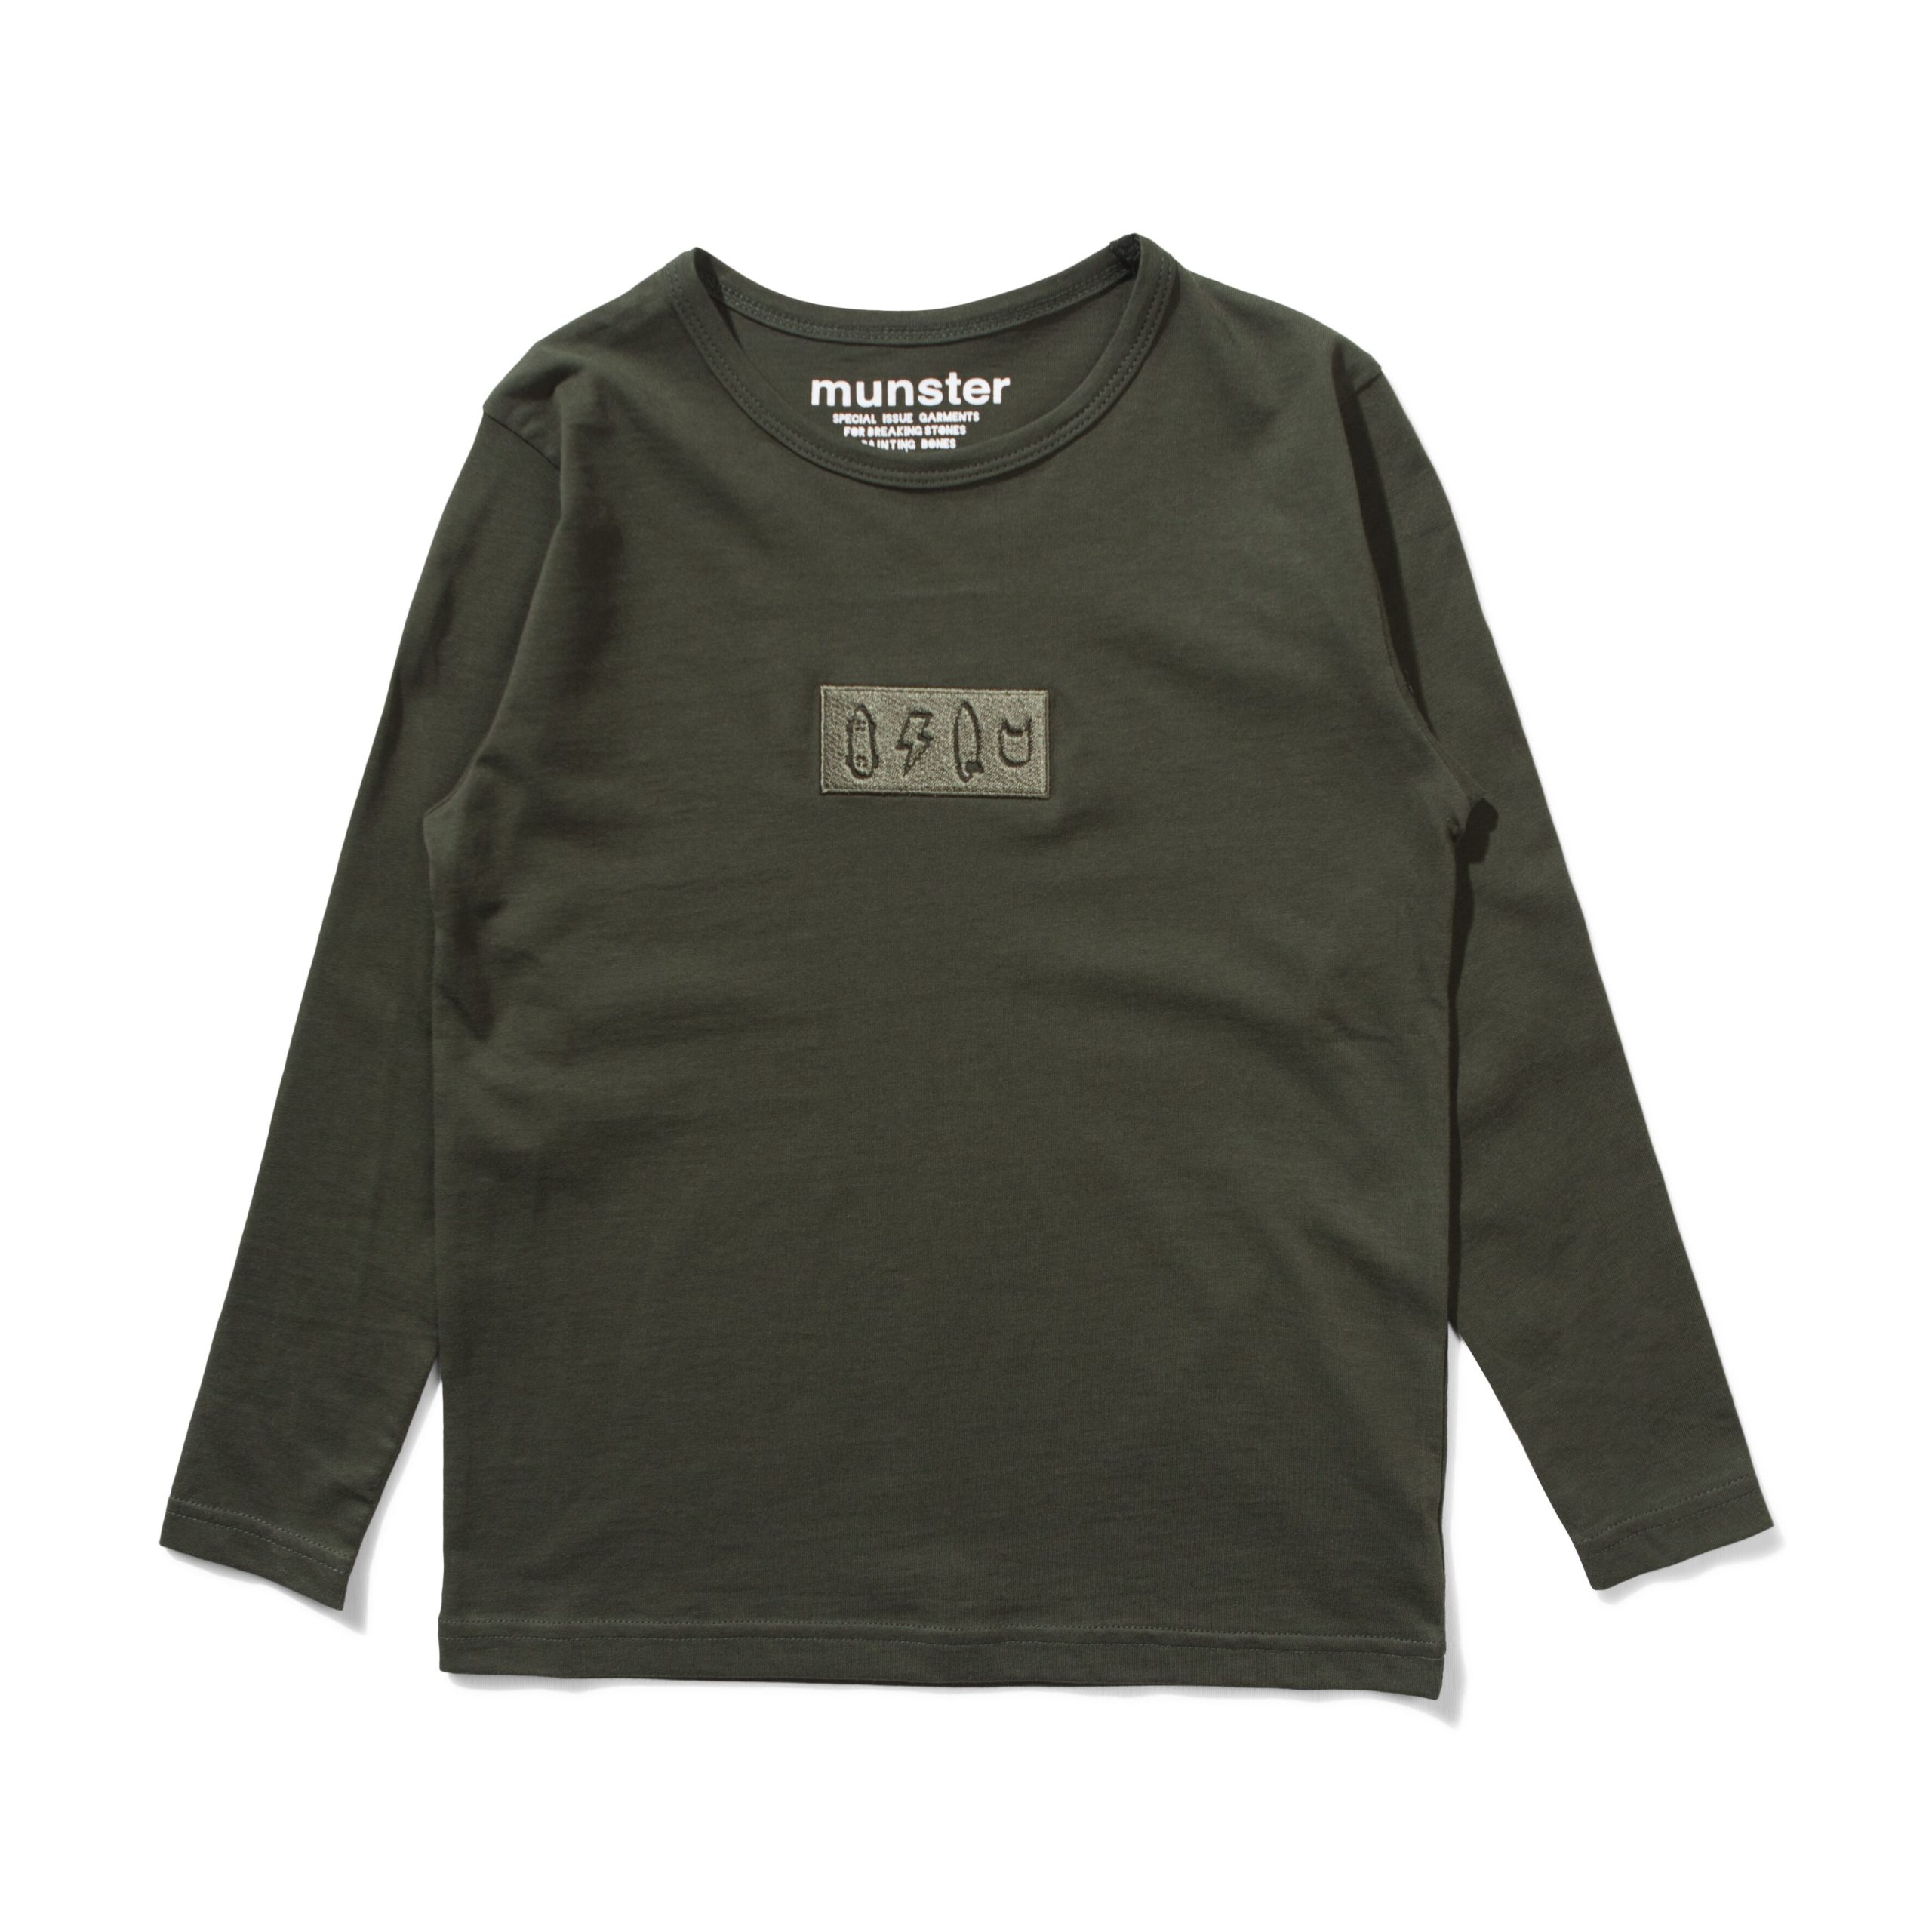 Munster 4 Life LS Tee (forest)